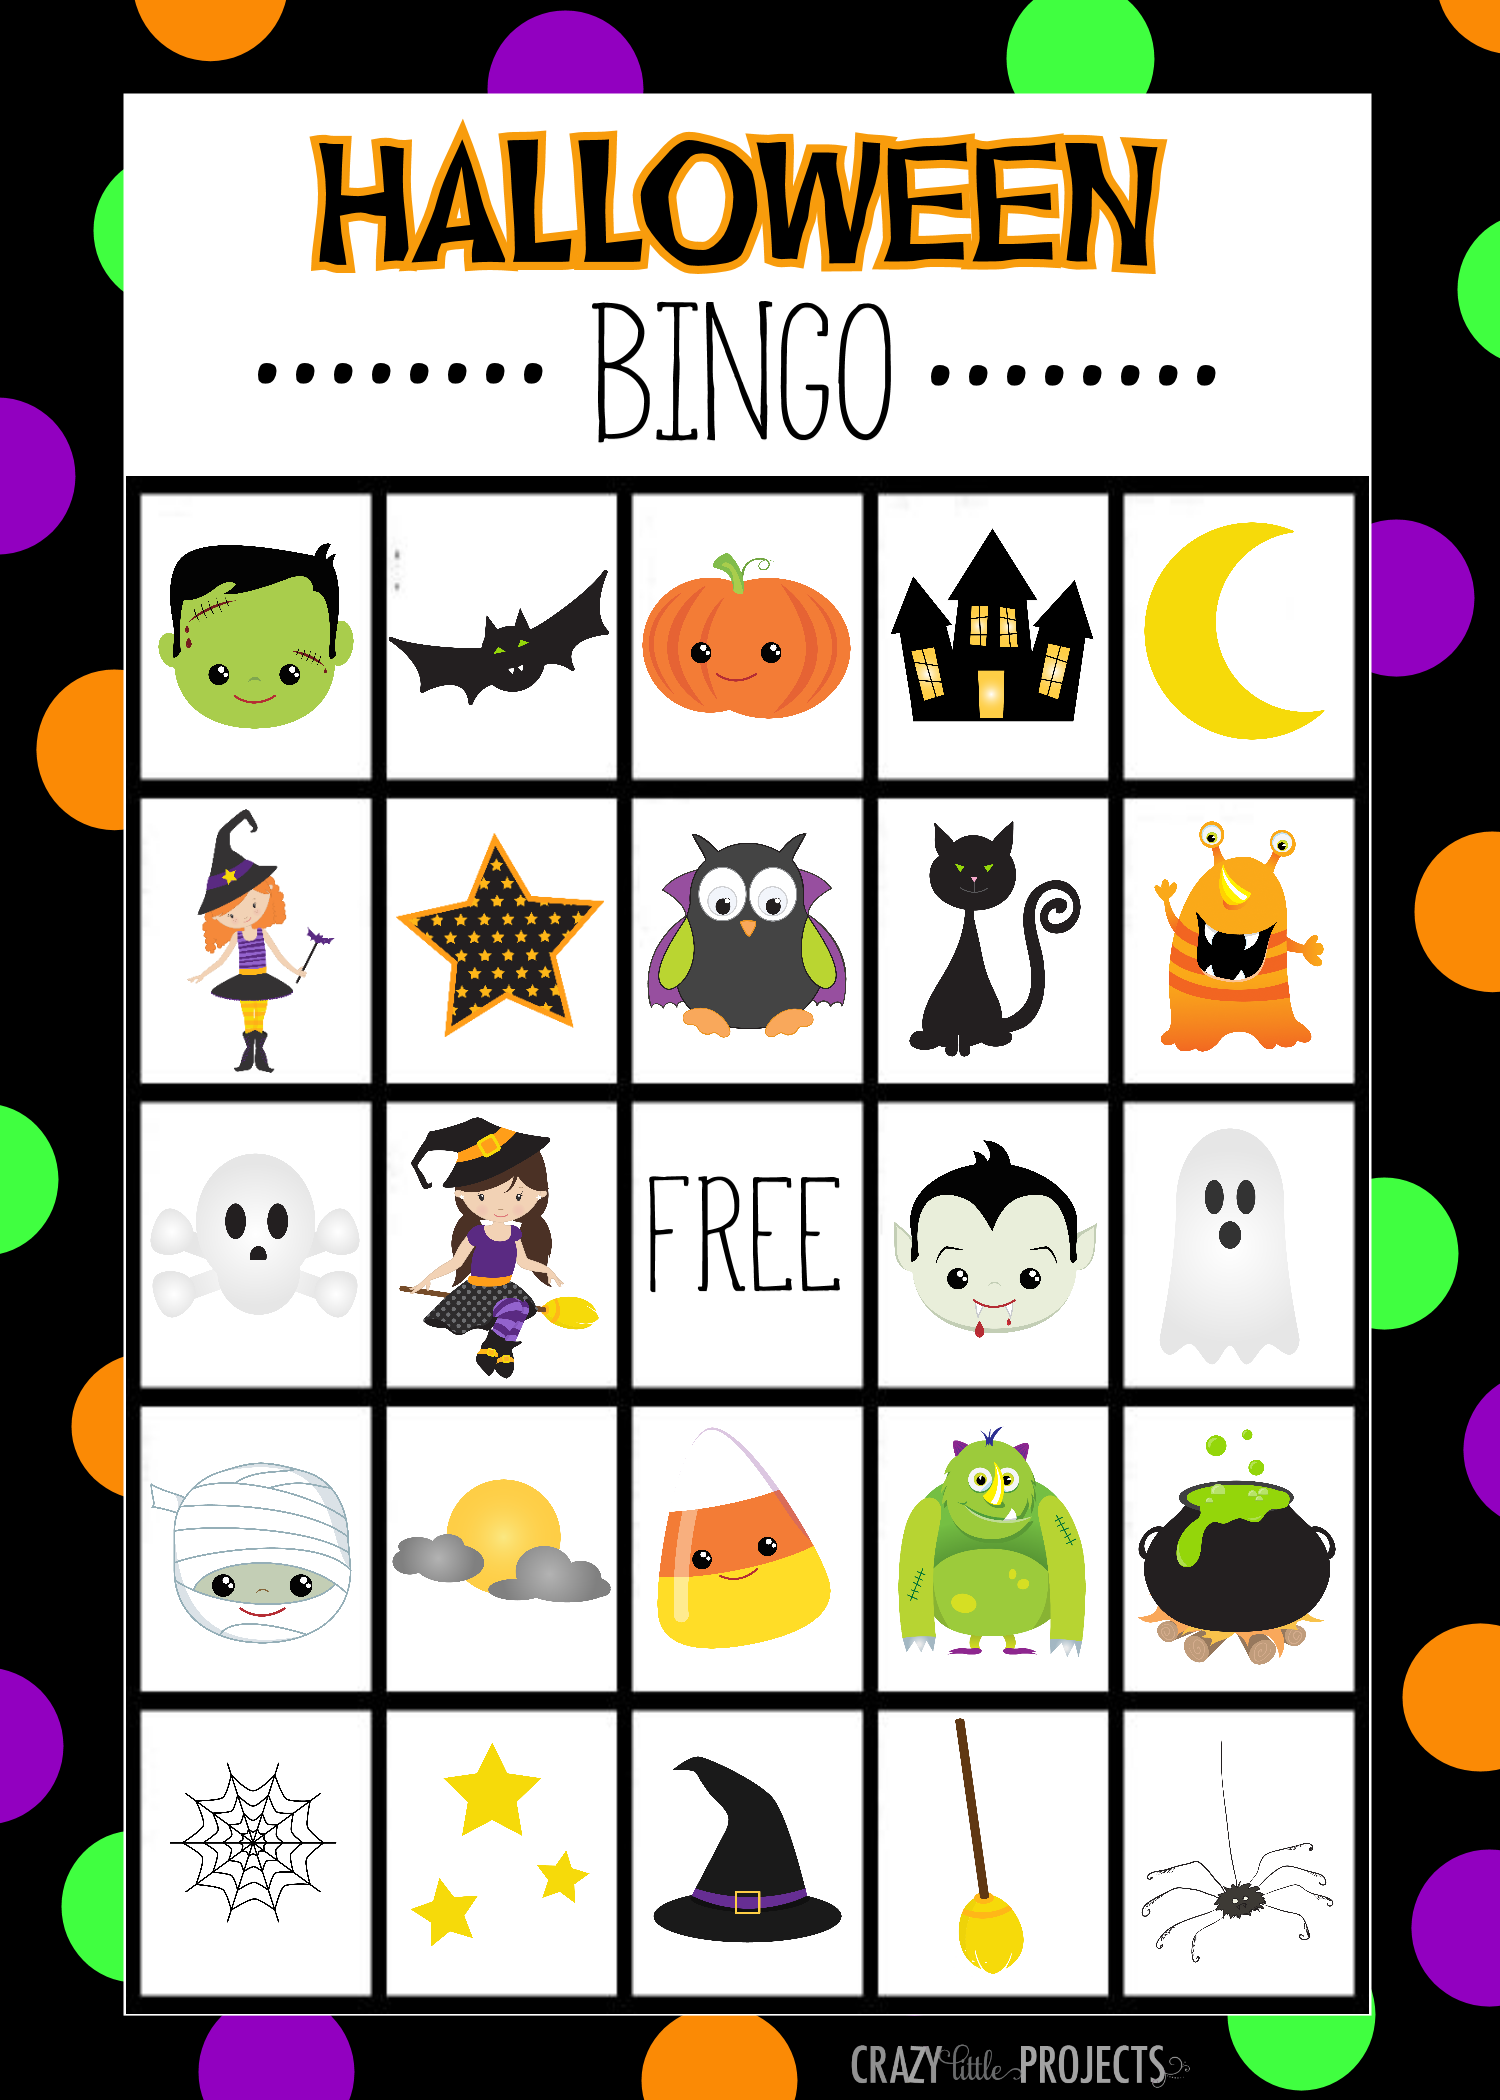 Halloween Bingo Cute Free Printable Game Fun Squared